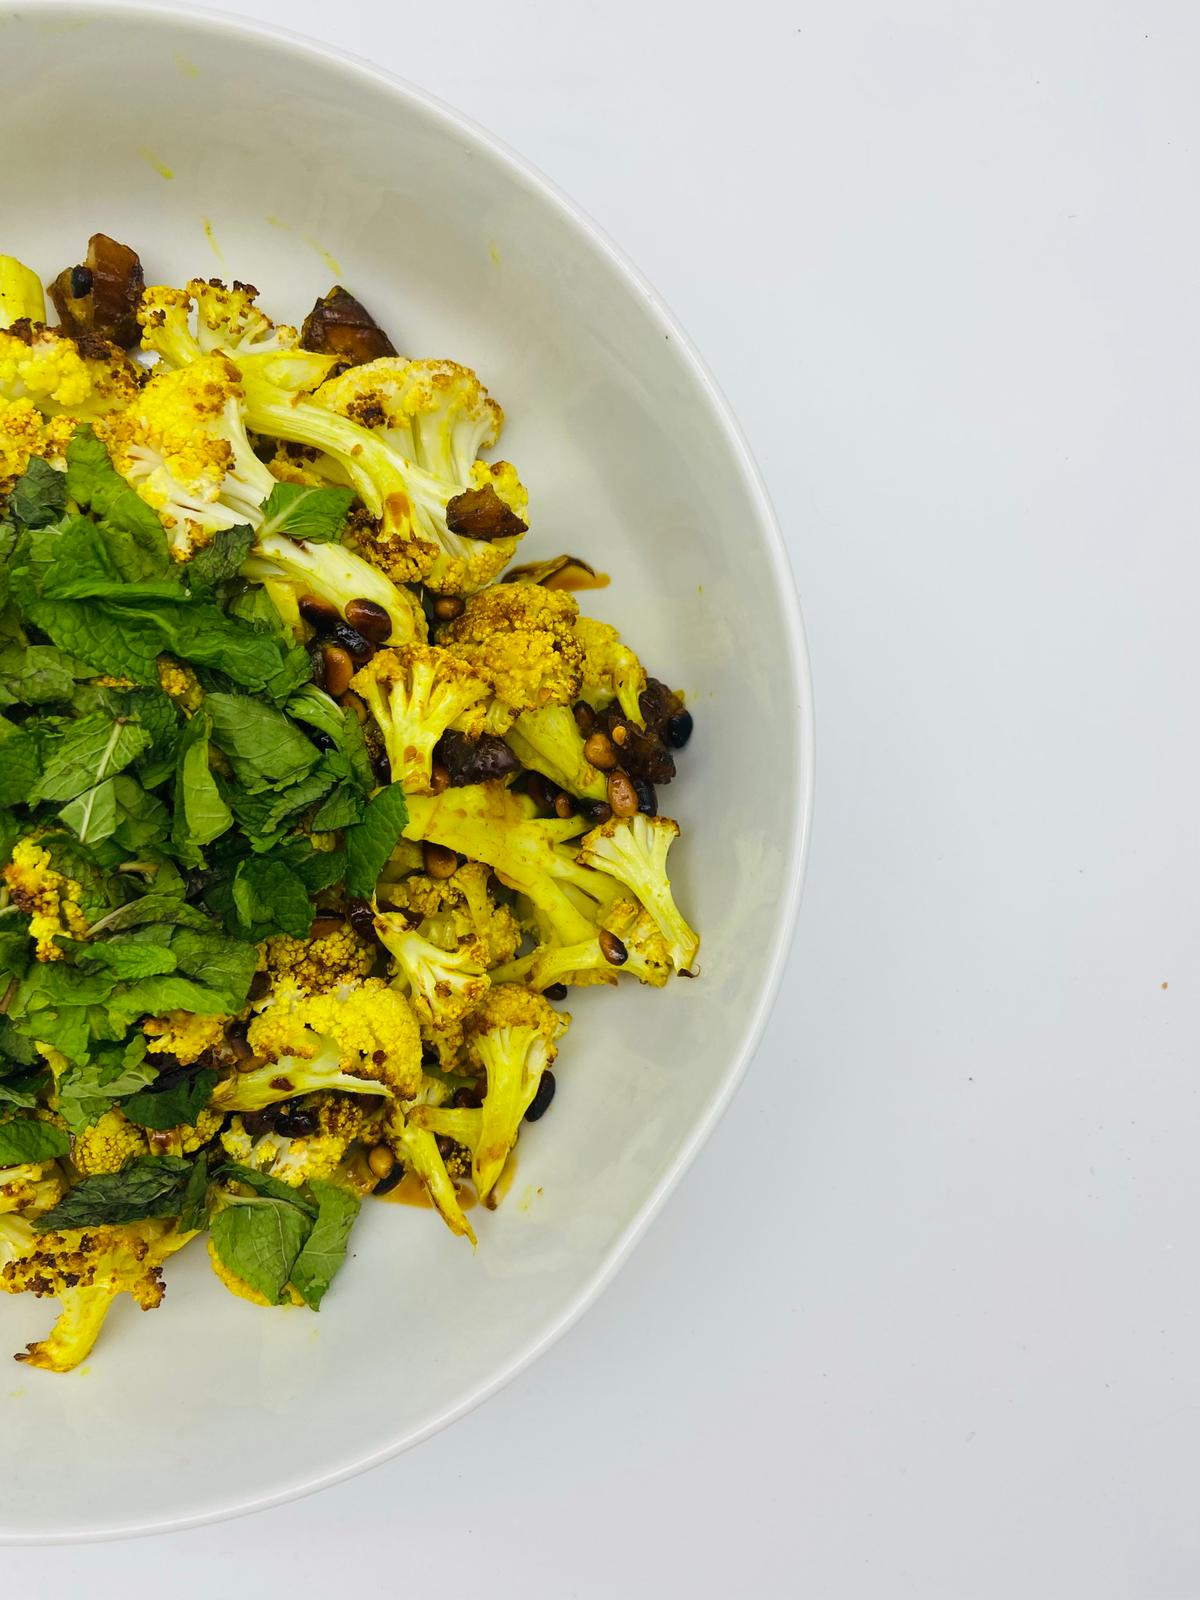 TURMERIC ROASTED CAULIFLOWER WITH DATES AND PINE NUTS